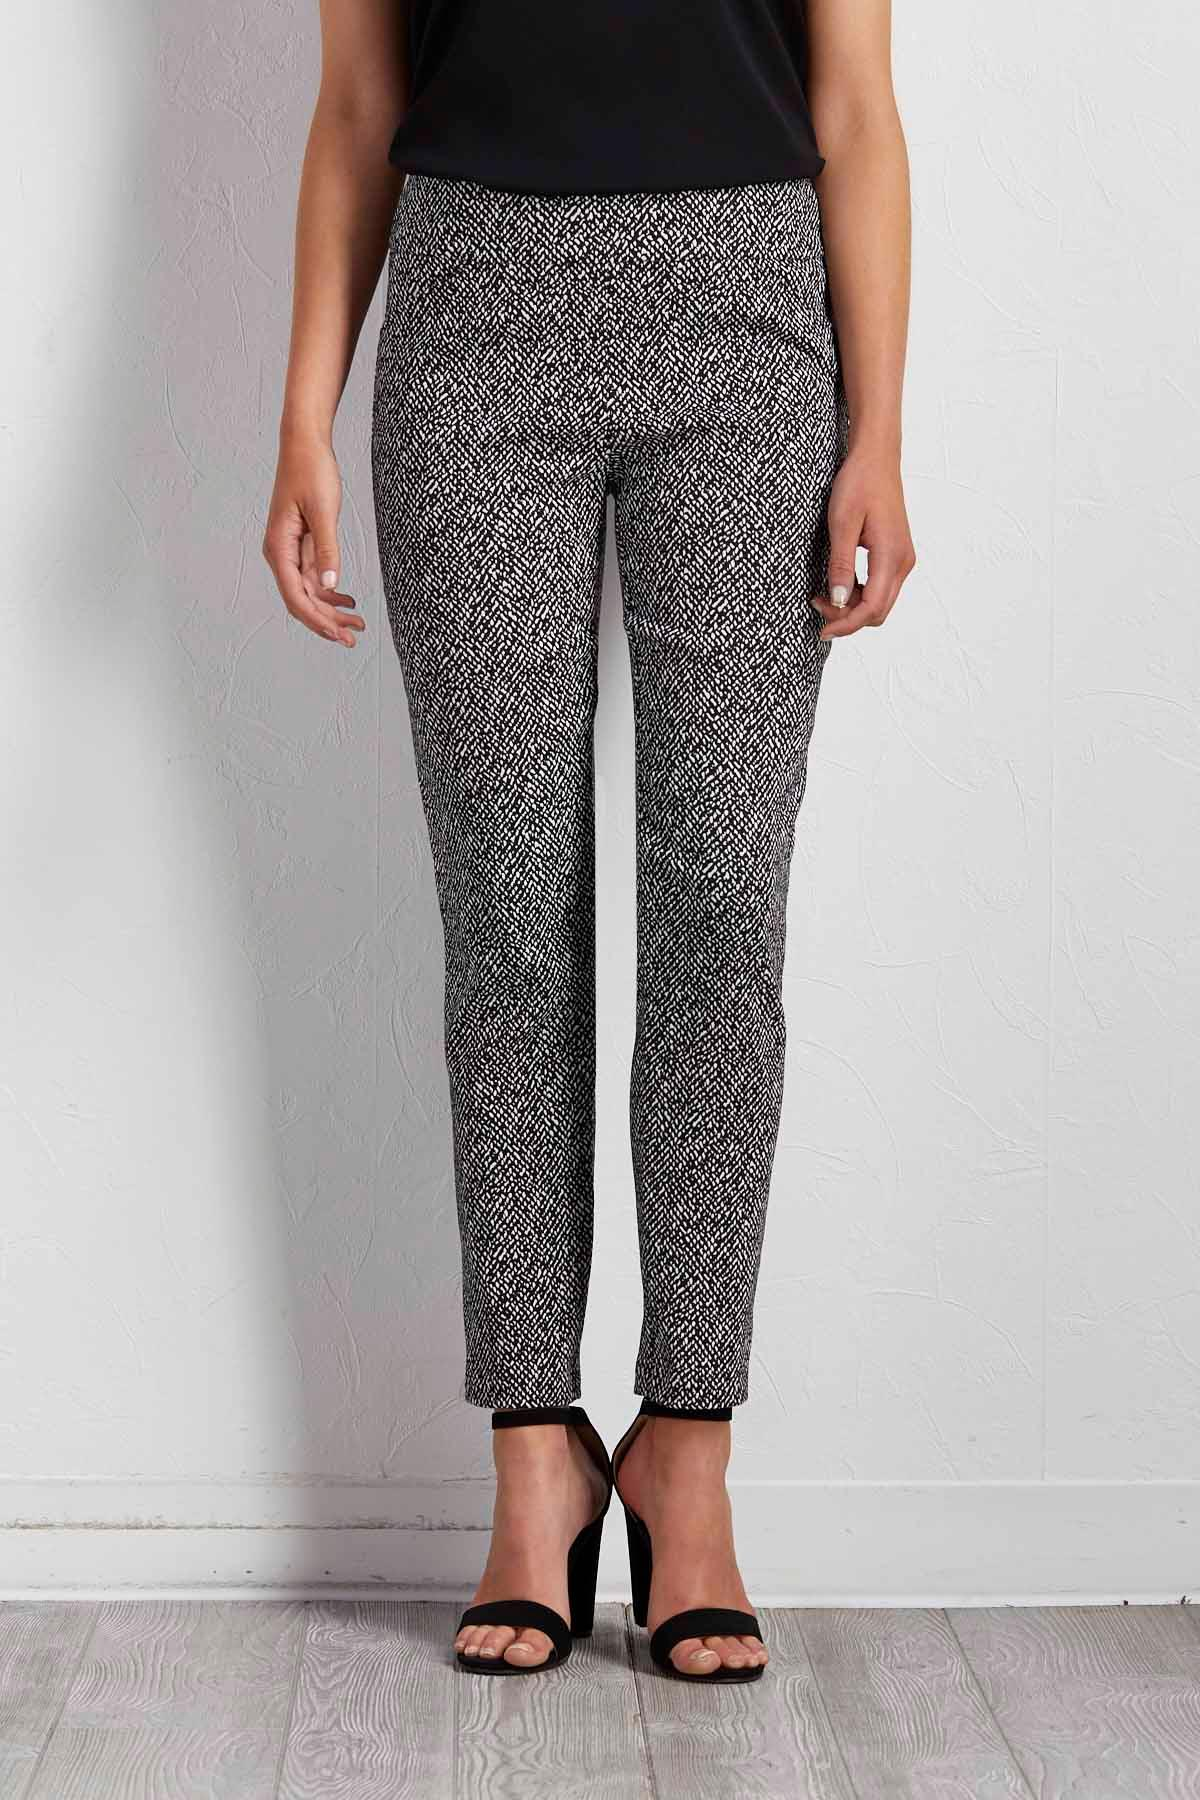 Black And White Ankle Stretch Pants